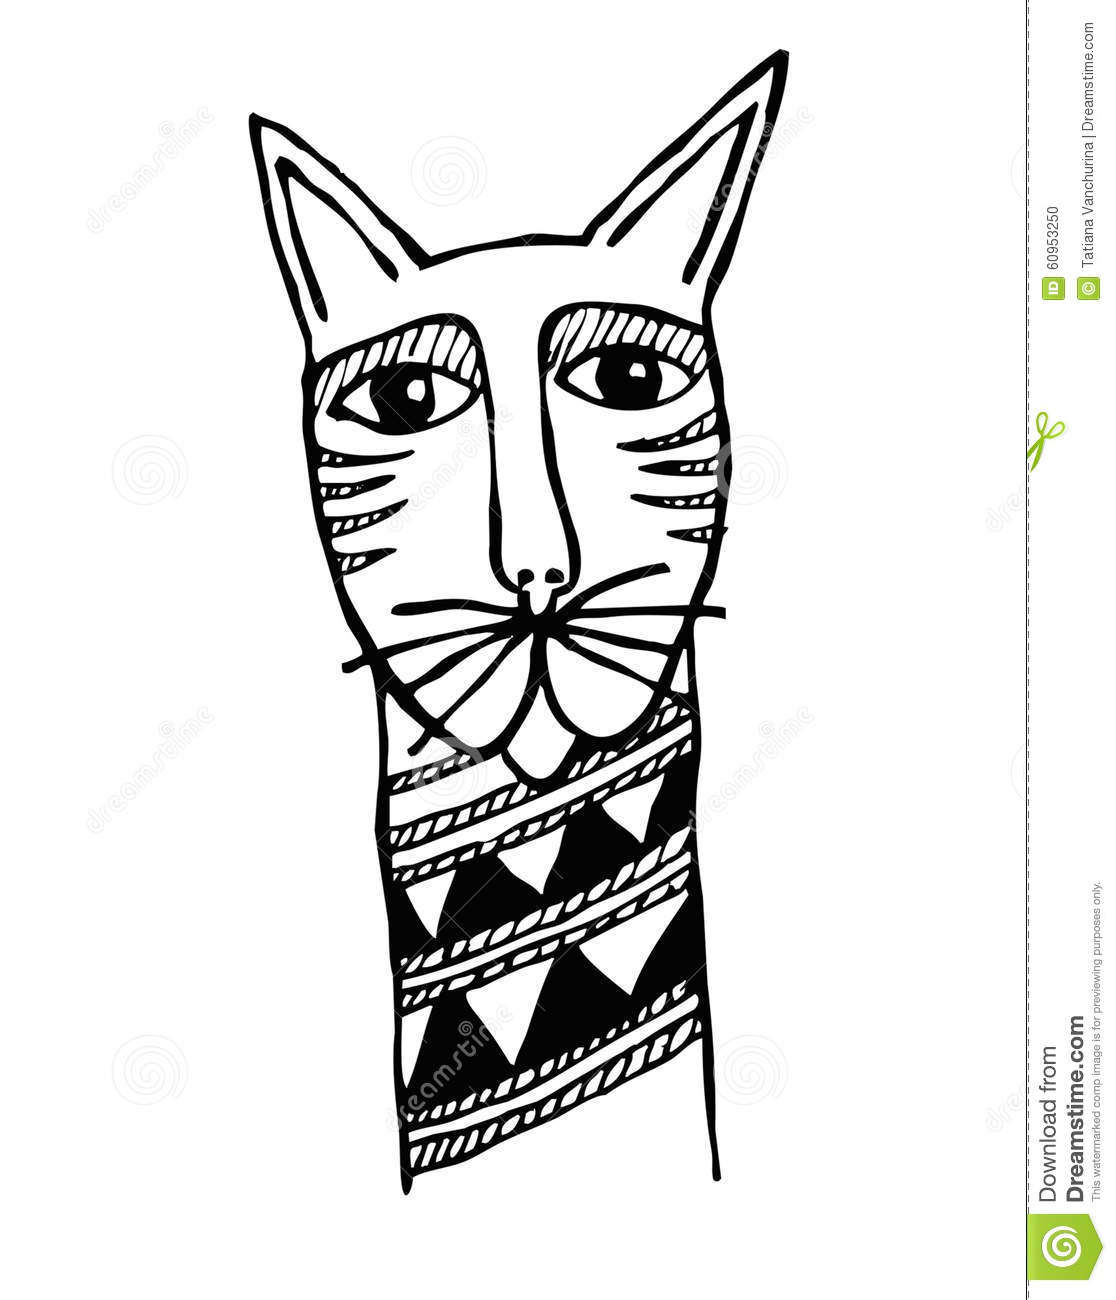 Tatouage Primitif Principal De Chats Illustration De Vecteur